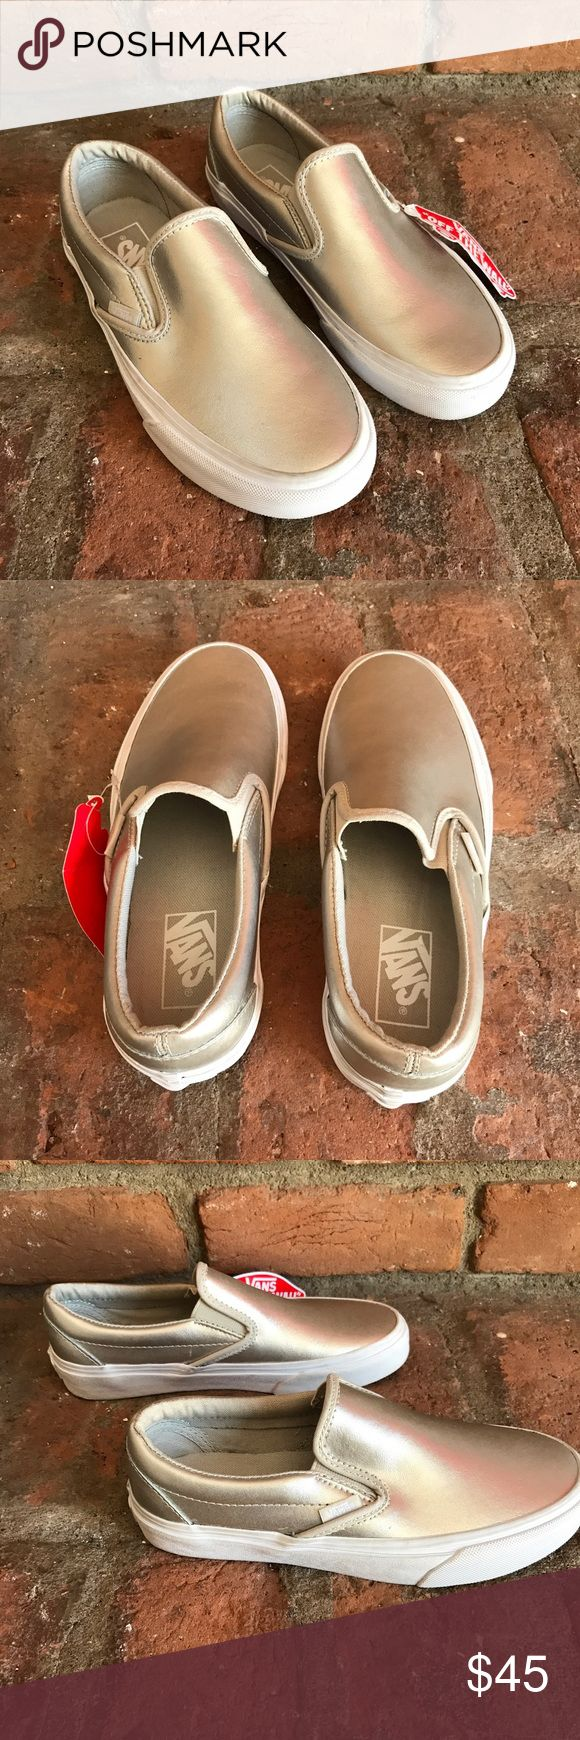 Vans nwt classic slip on sneakers silver ❗️ NWT vans classic sneakers super cute size women's 6 Vans Shoes Sneakers